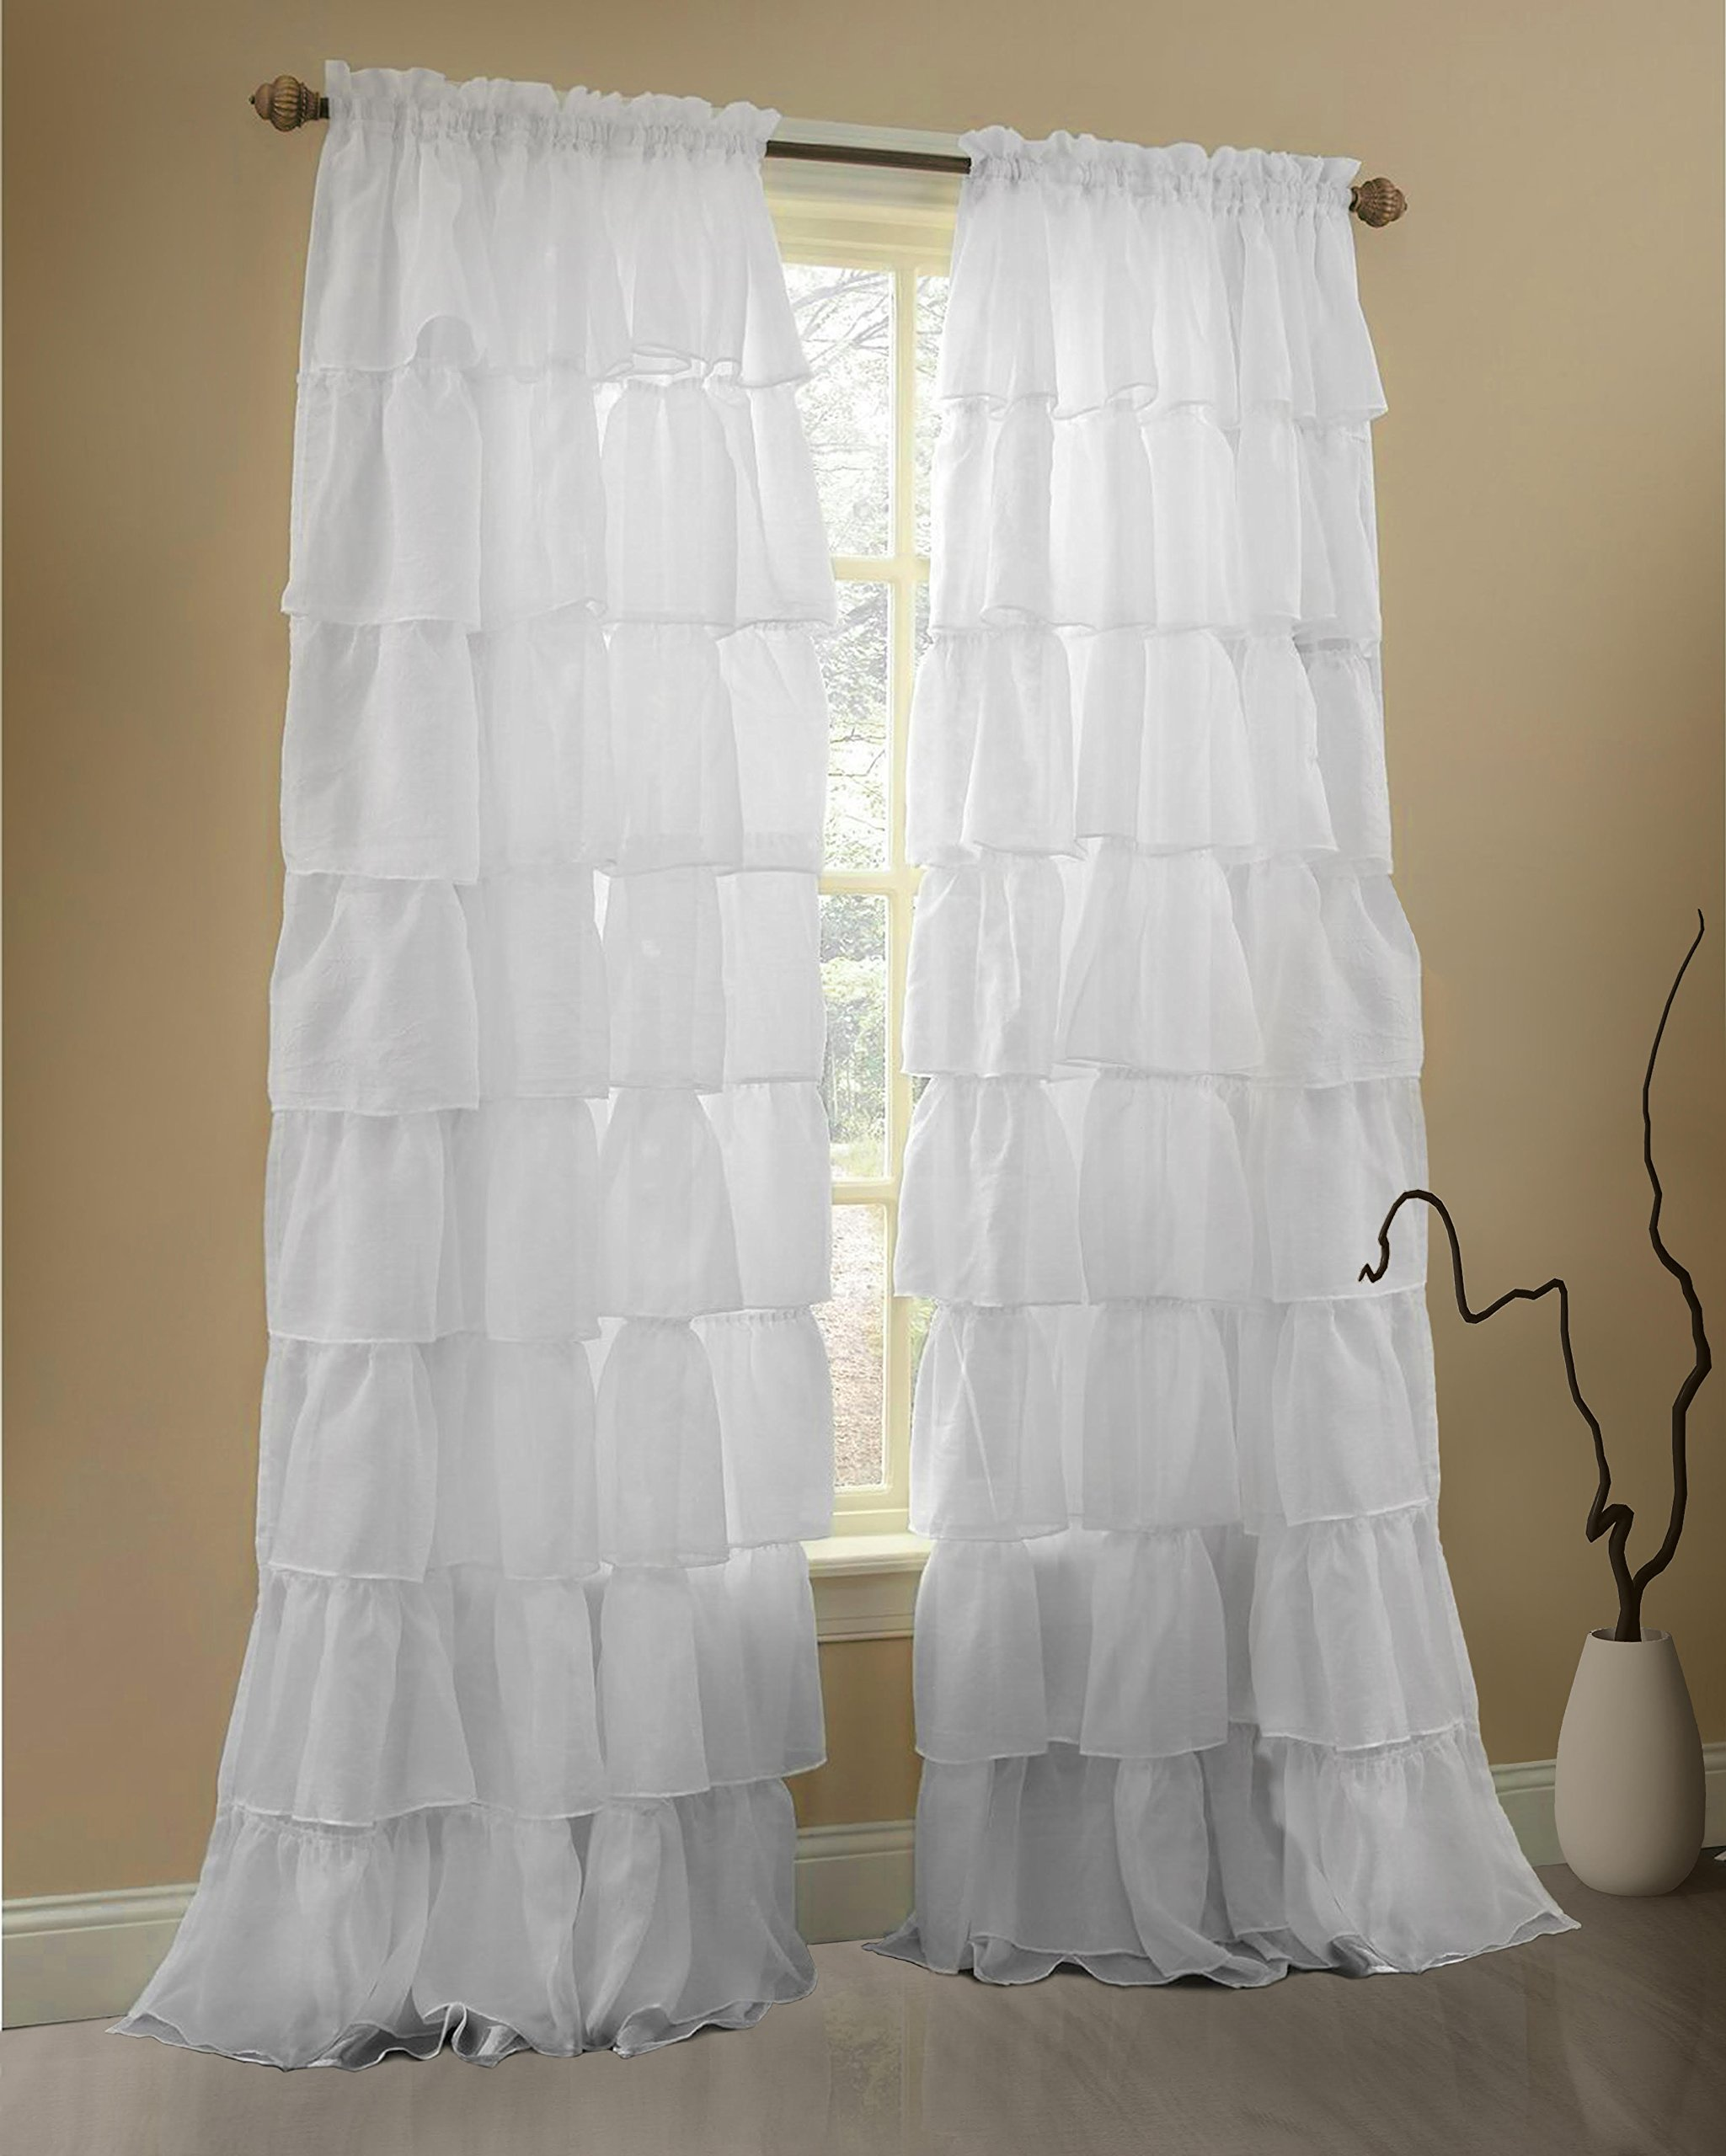 Bedroom Curtains Sale Cheap Kids Curtains Sale Find Kids Curtains Sale Deals On Line At